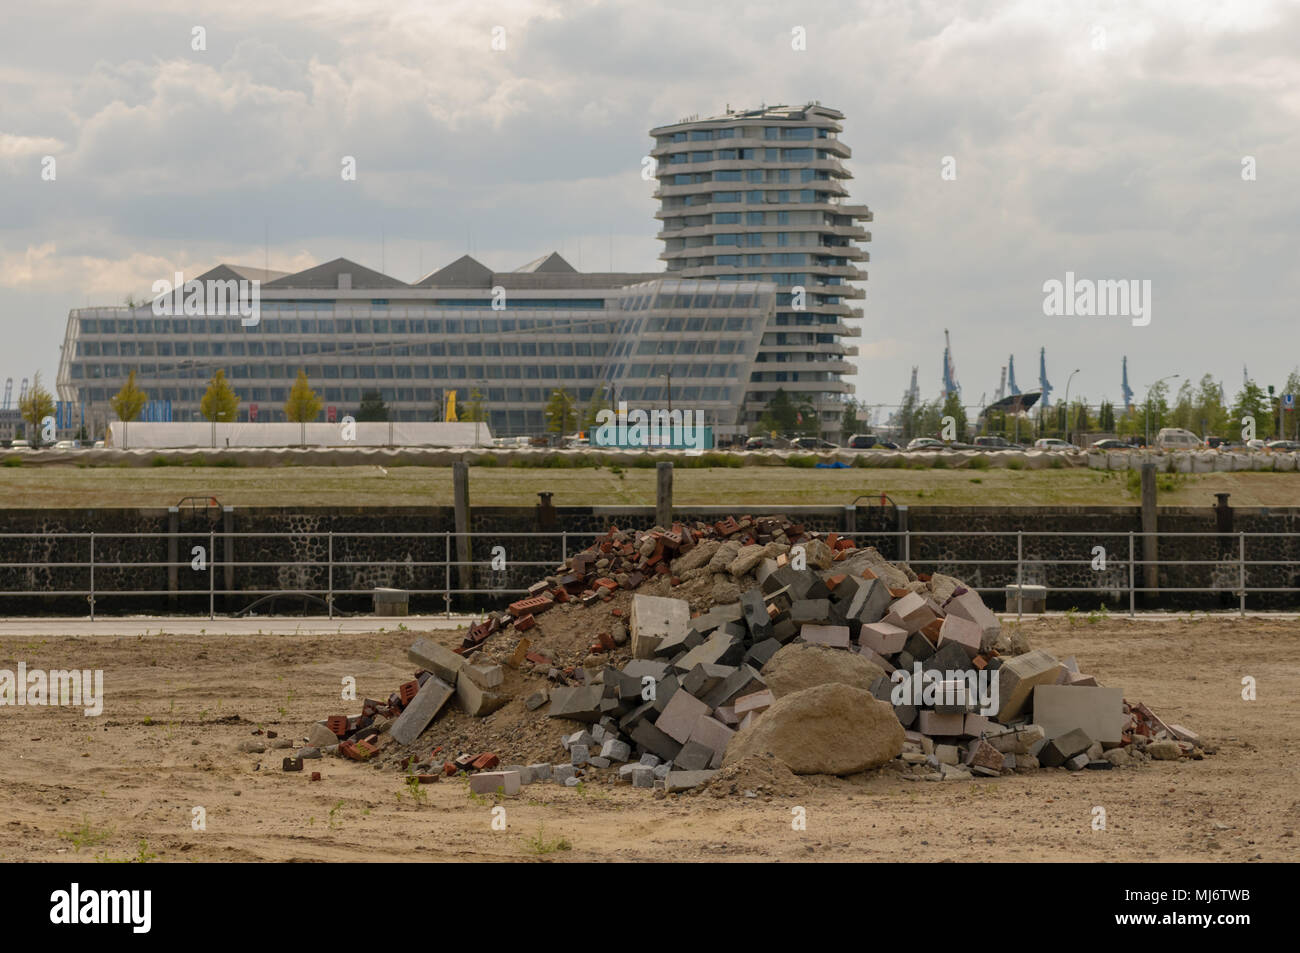 Hamburg, Germany - April 11, 2015: Hafencity is a vivid mix between construction site and fast growing city quarter, - Stock Image